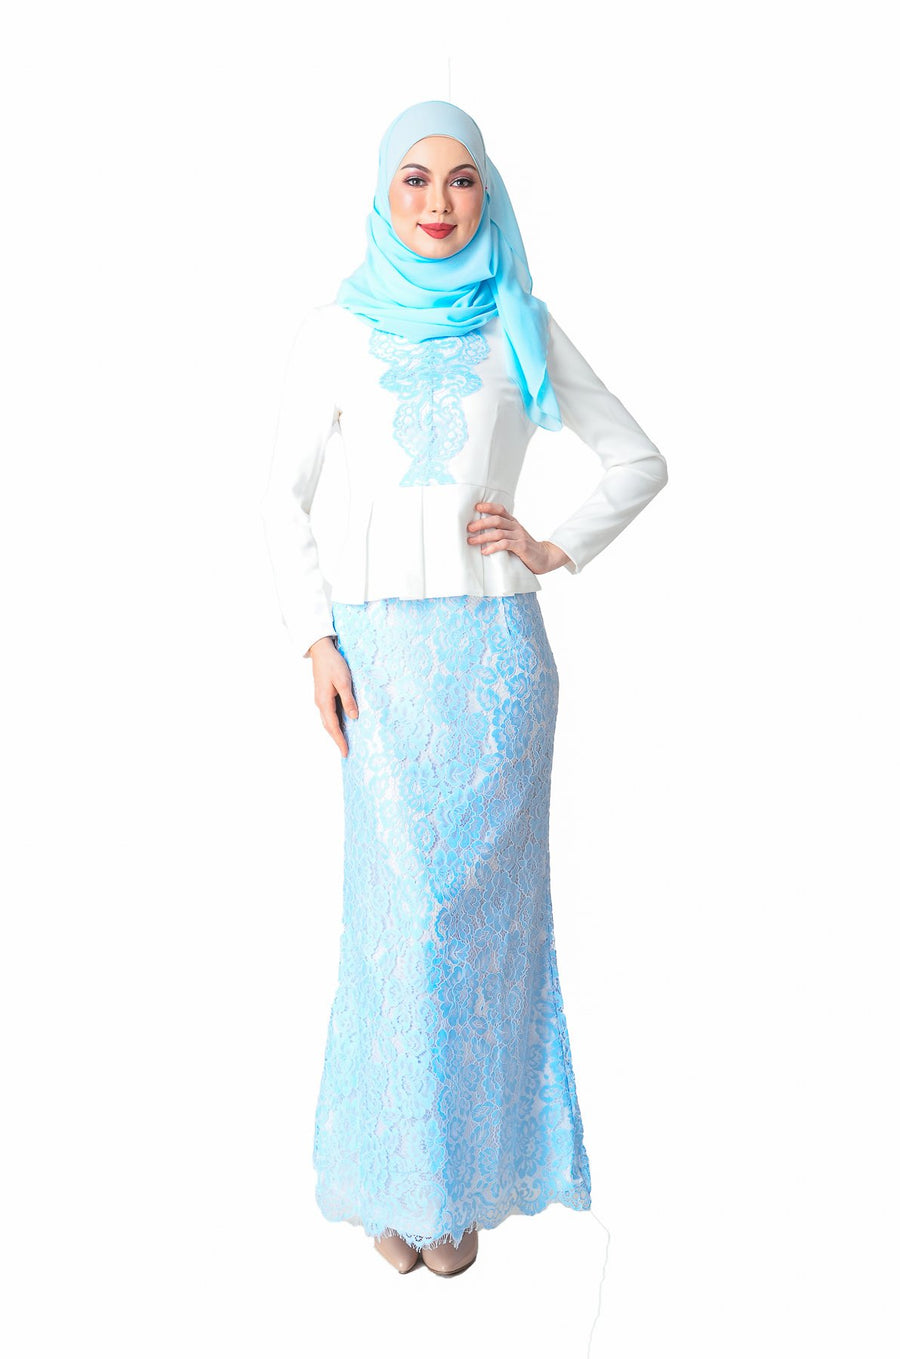 Online Baju Kurung, Blouse, Dress, Skirt Muslimah - Shipped